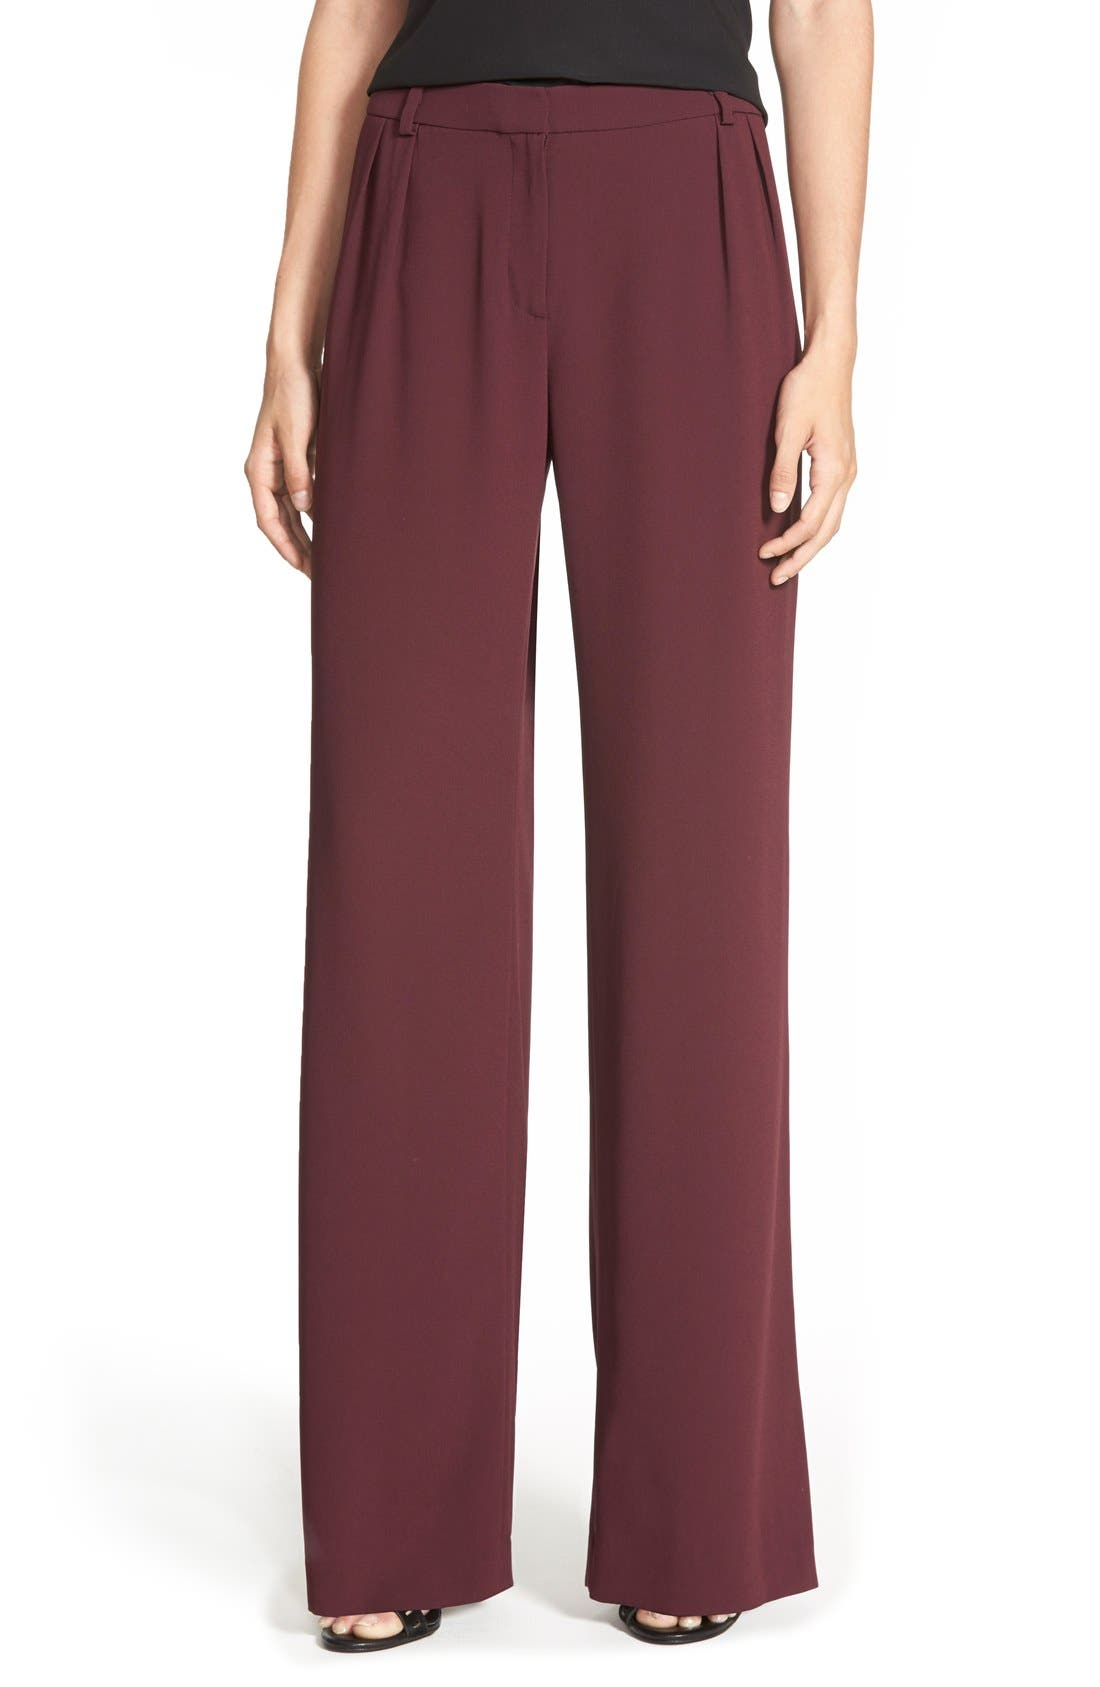 Alternate Image 1 Selected - Chelsea28 Pleated Wide Leg Pants